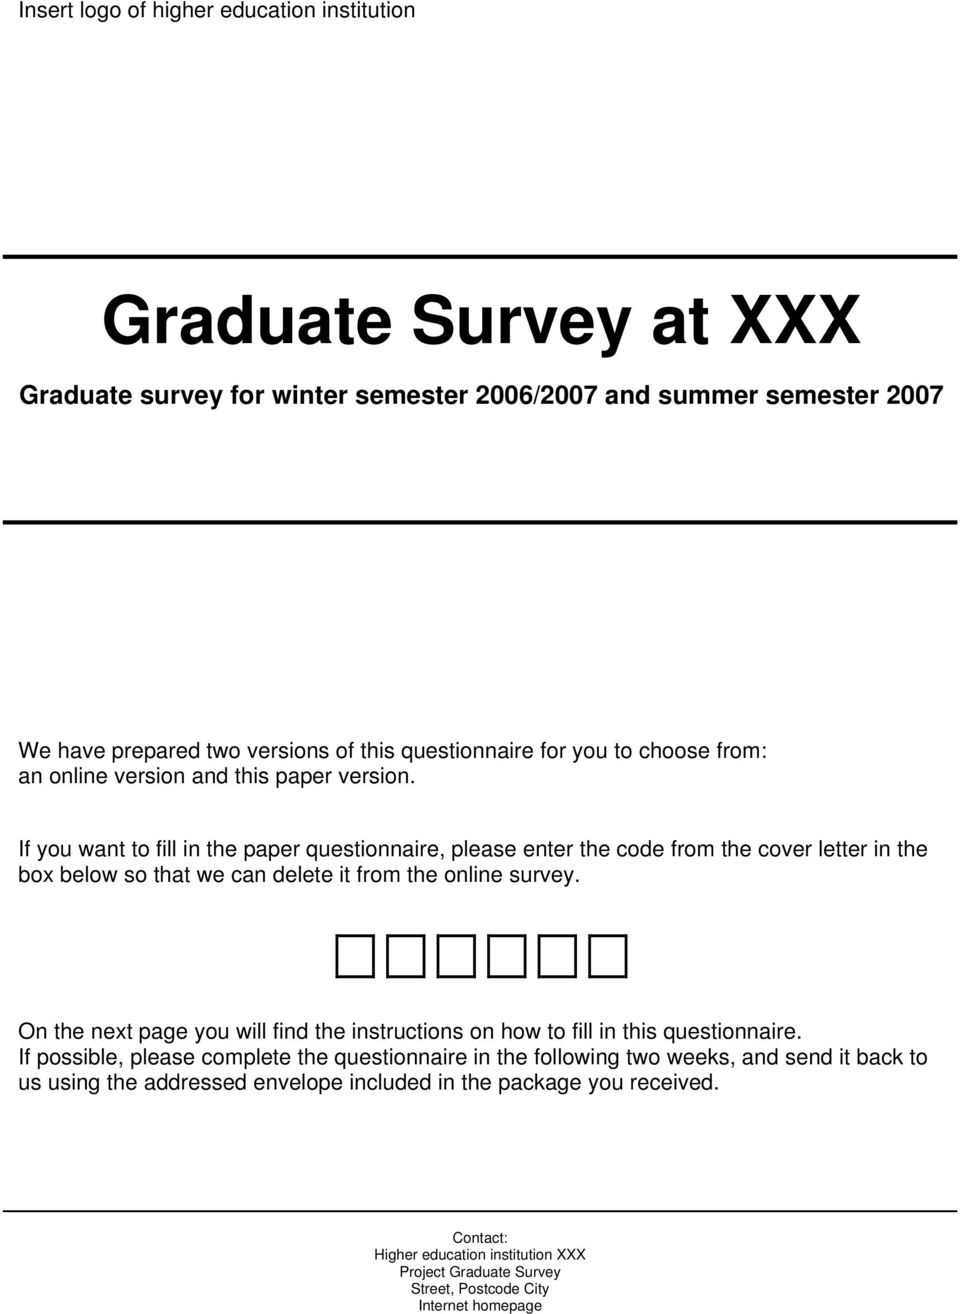 If you want to fill in the paper questionnaire, please enter the code from the cover letter in the box below so that we can delete it from the online survey.